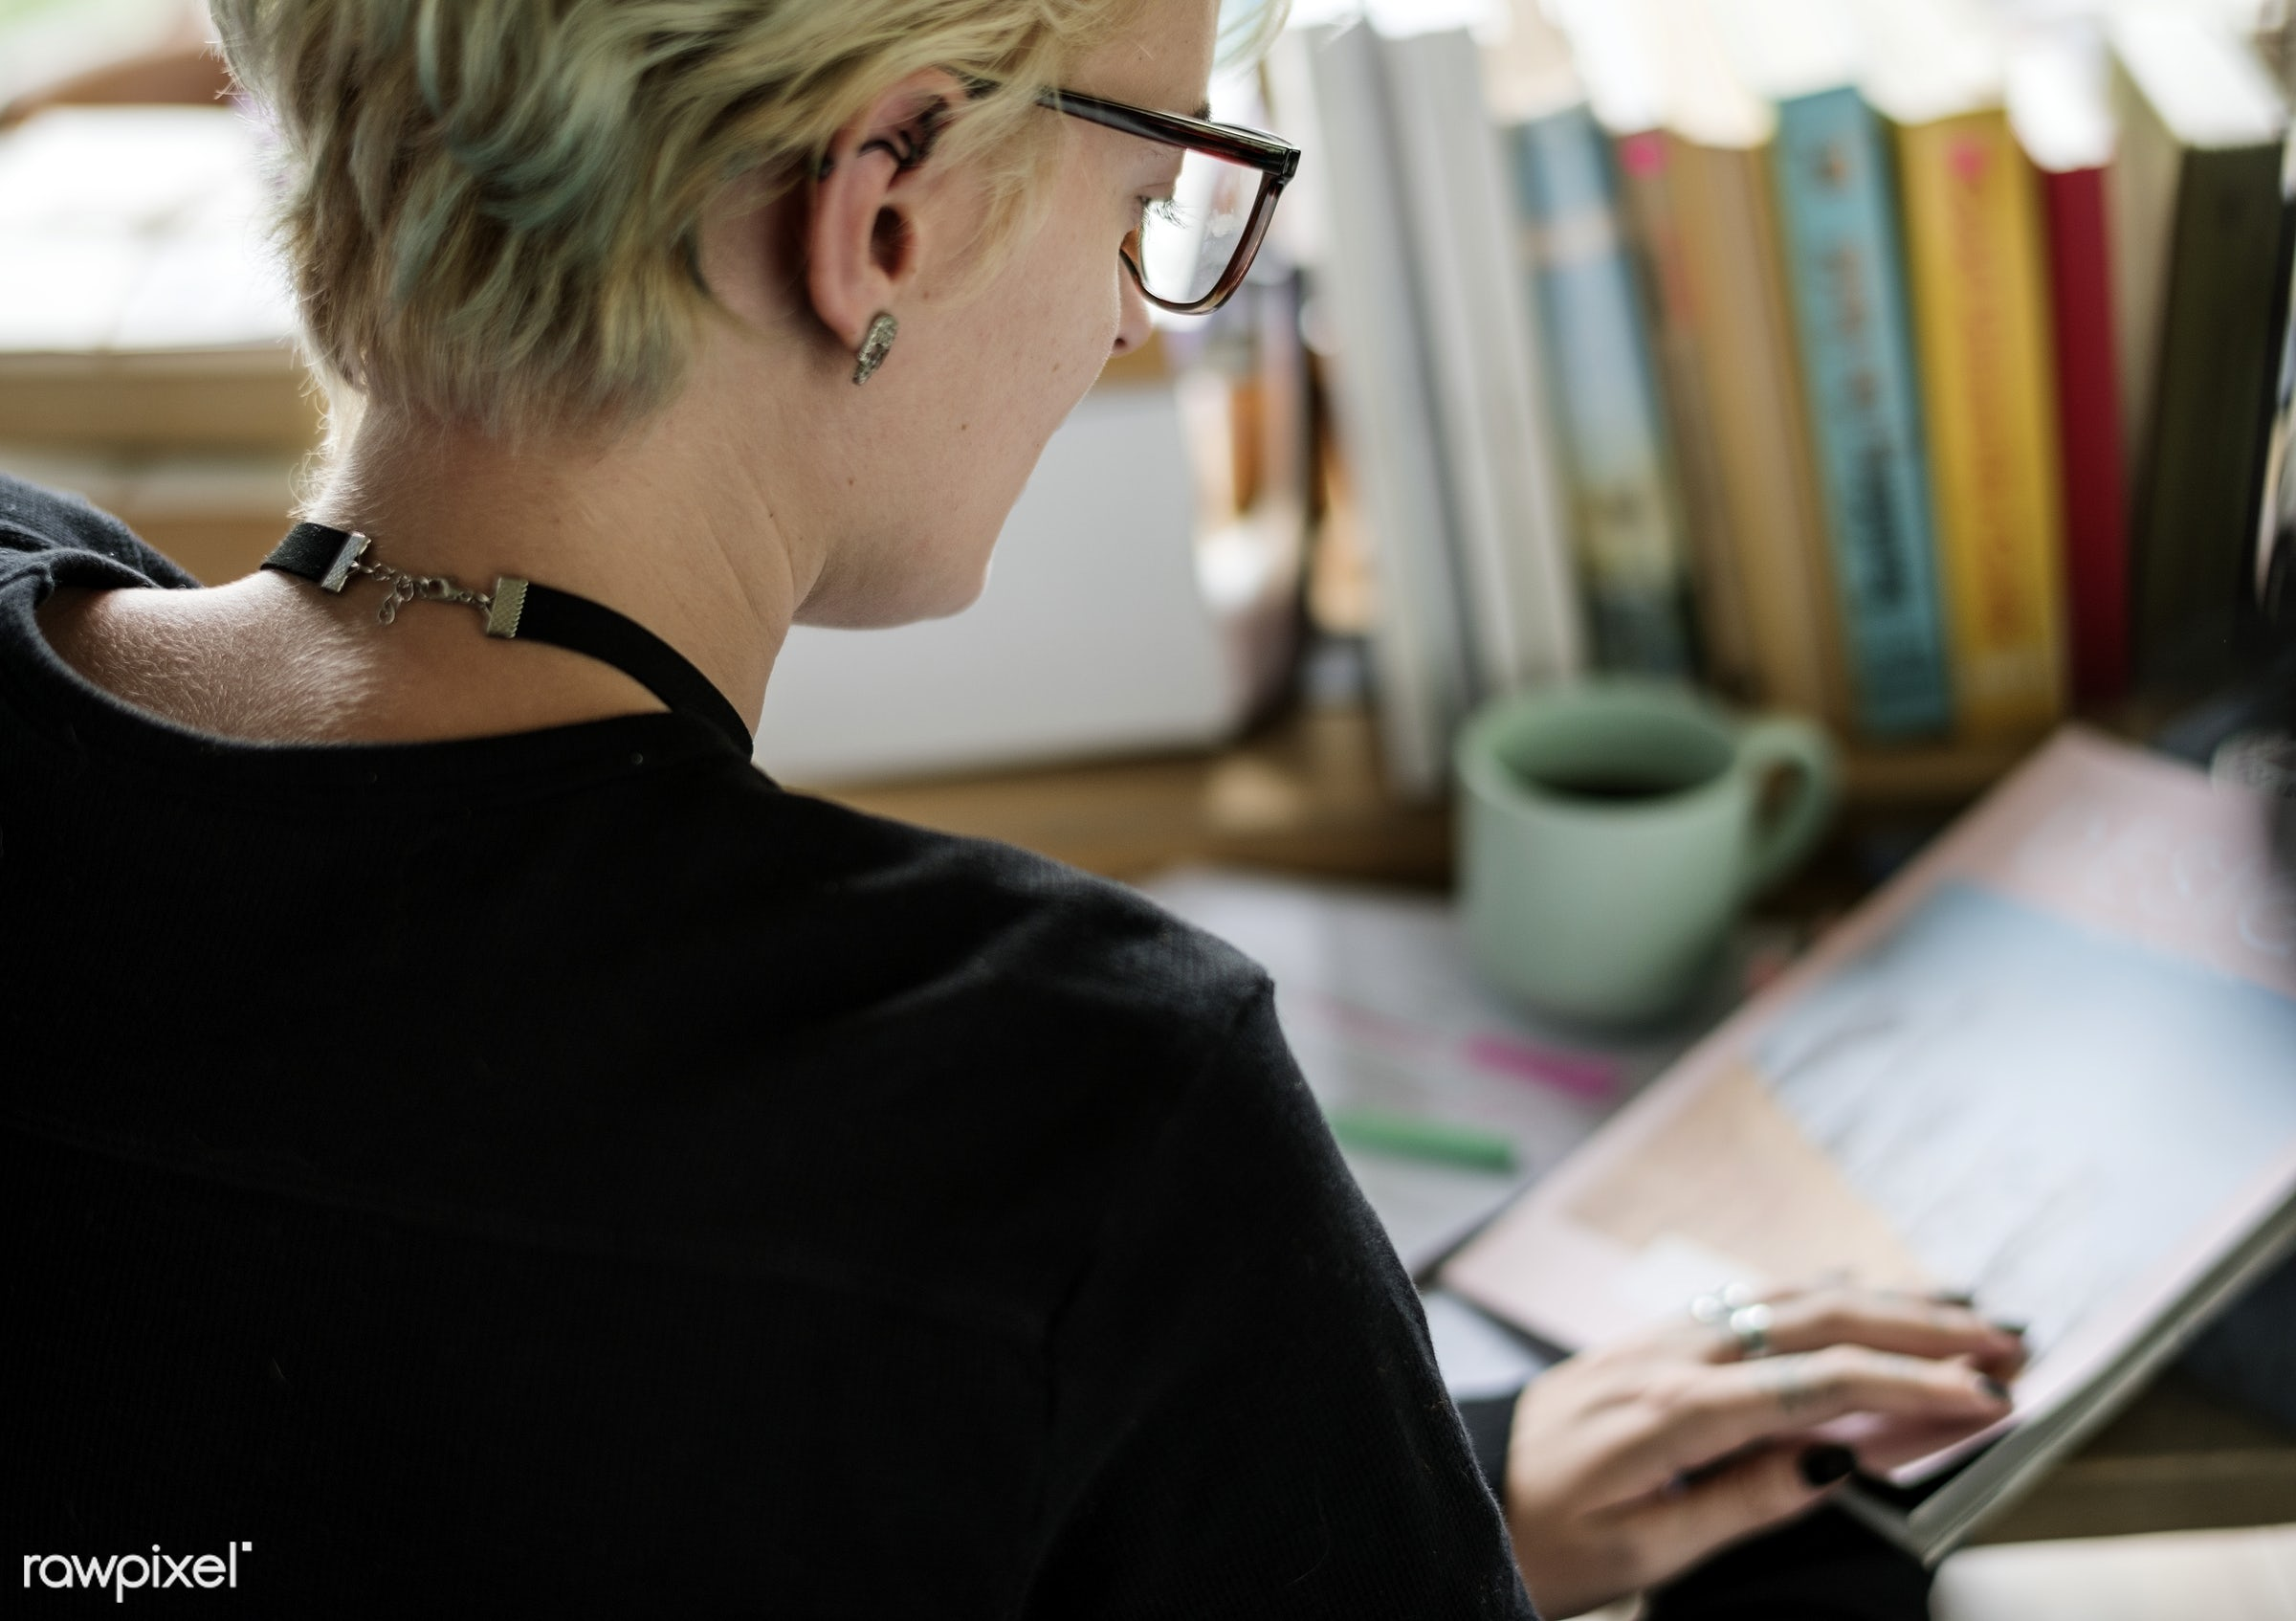 Blonde woman working in her office - reading, attach, book, attached, back, bookworm, closeup, desk, hobby, job, learning,...